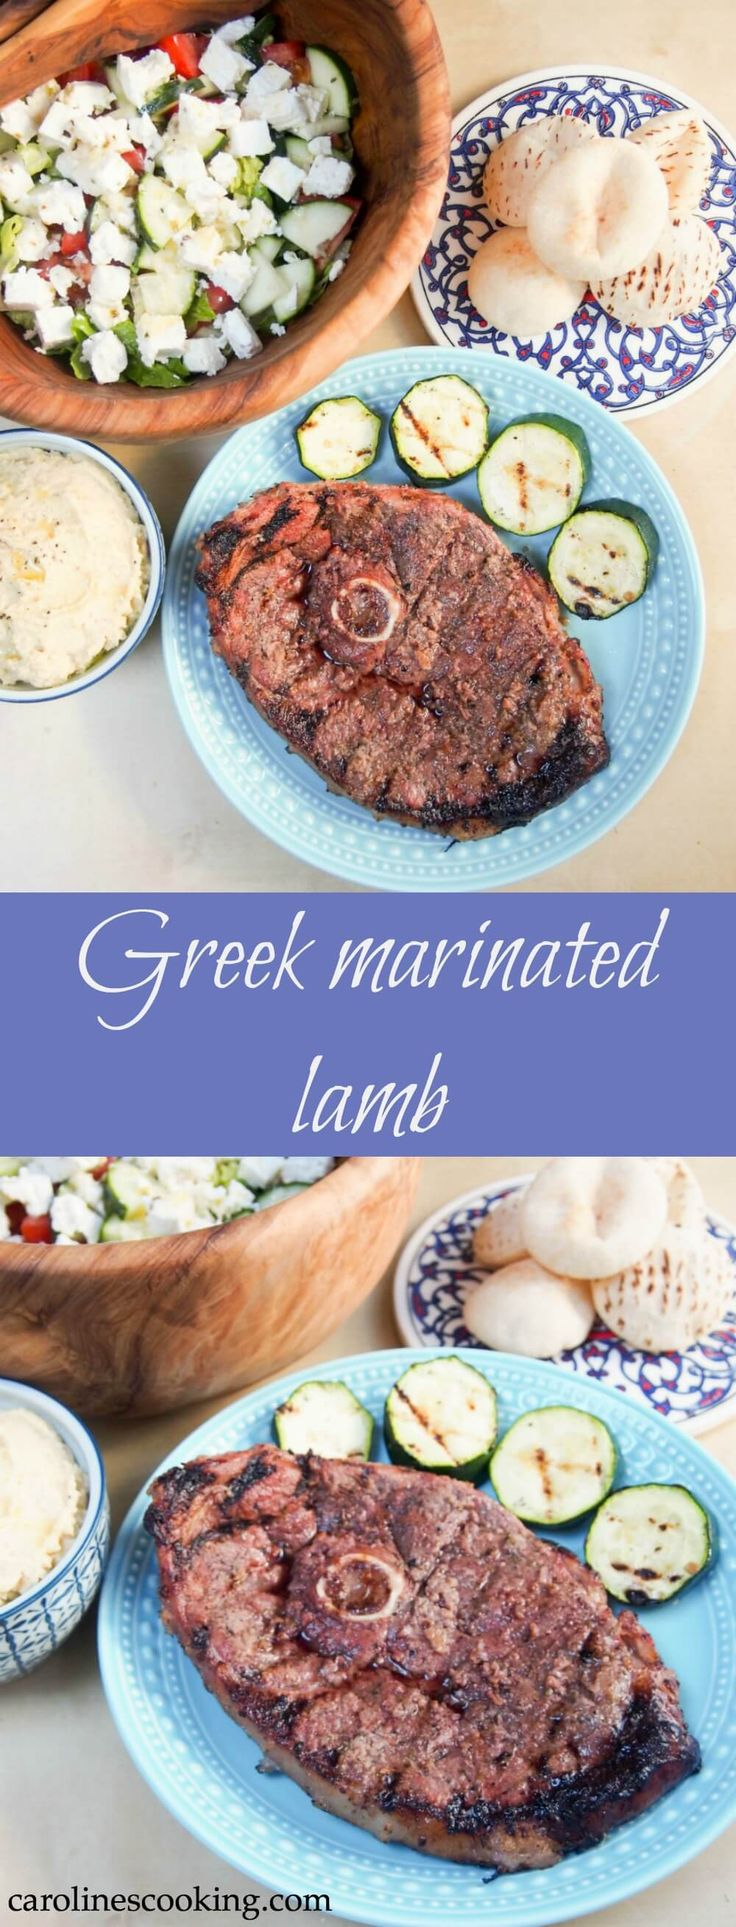 98 best greek food recipes images on pinterest greek recipes greek marinated lamb a really easy marinade gives a delicious flavor to this tasty main greek food recipeslamb forumfinder Choice Image